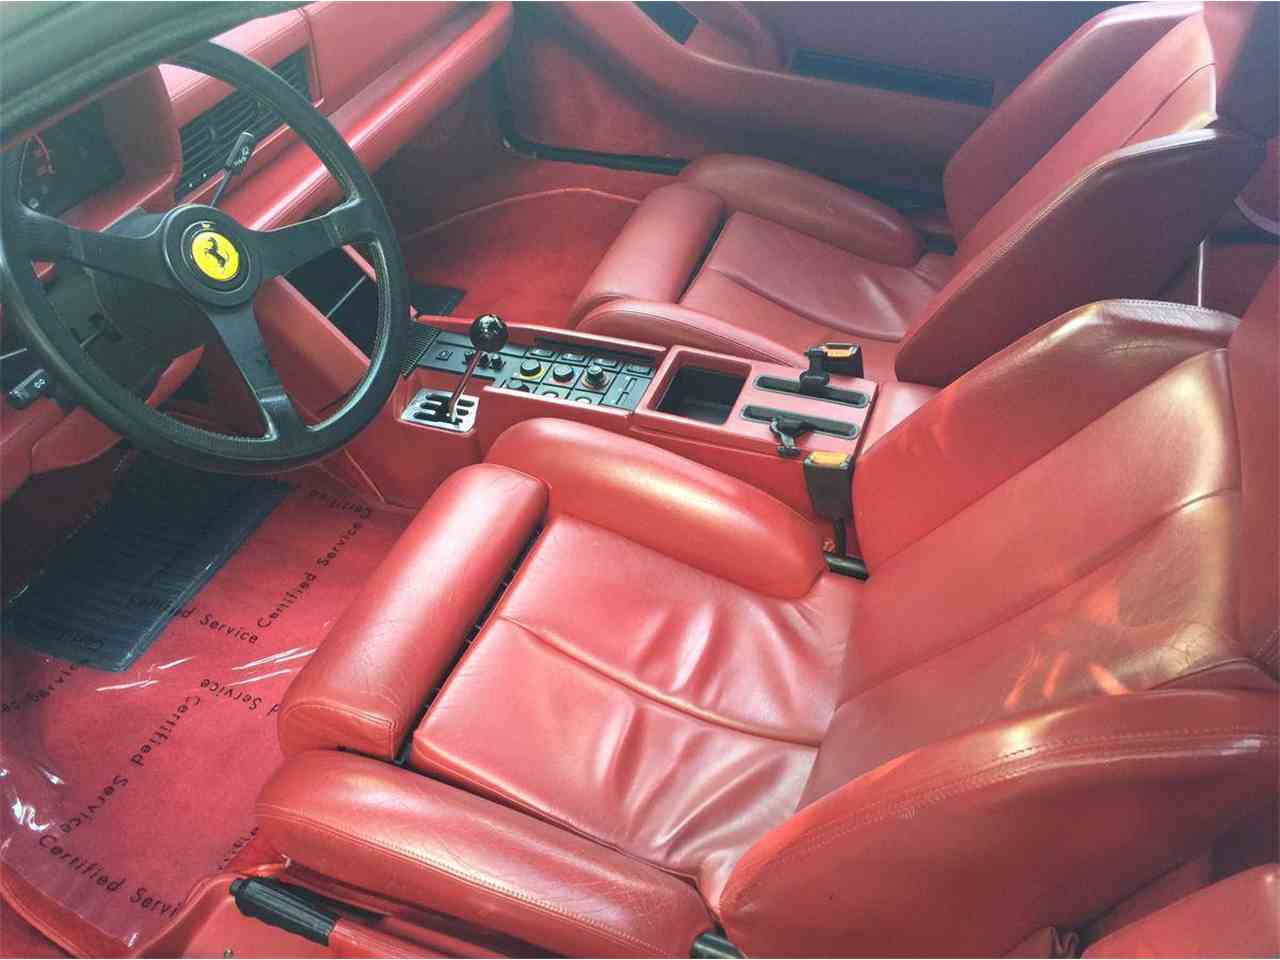 Large Picture of 1989 Ferrari Testarossa - $135,000.00 Offered by Classic Motorcars - L5I6